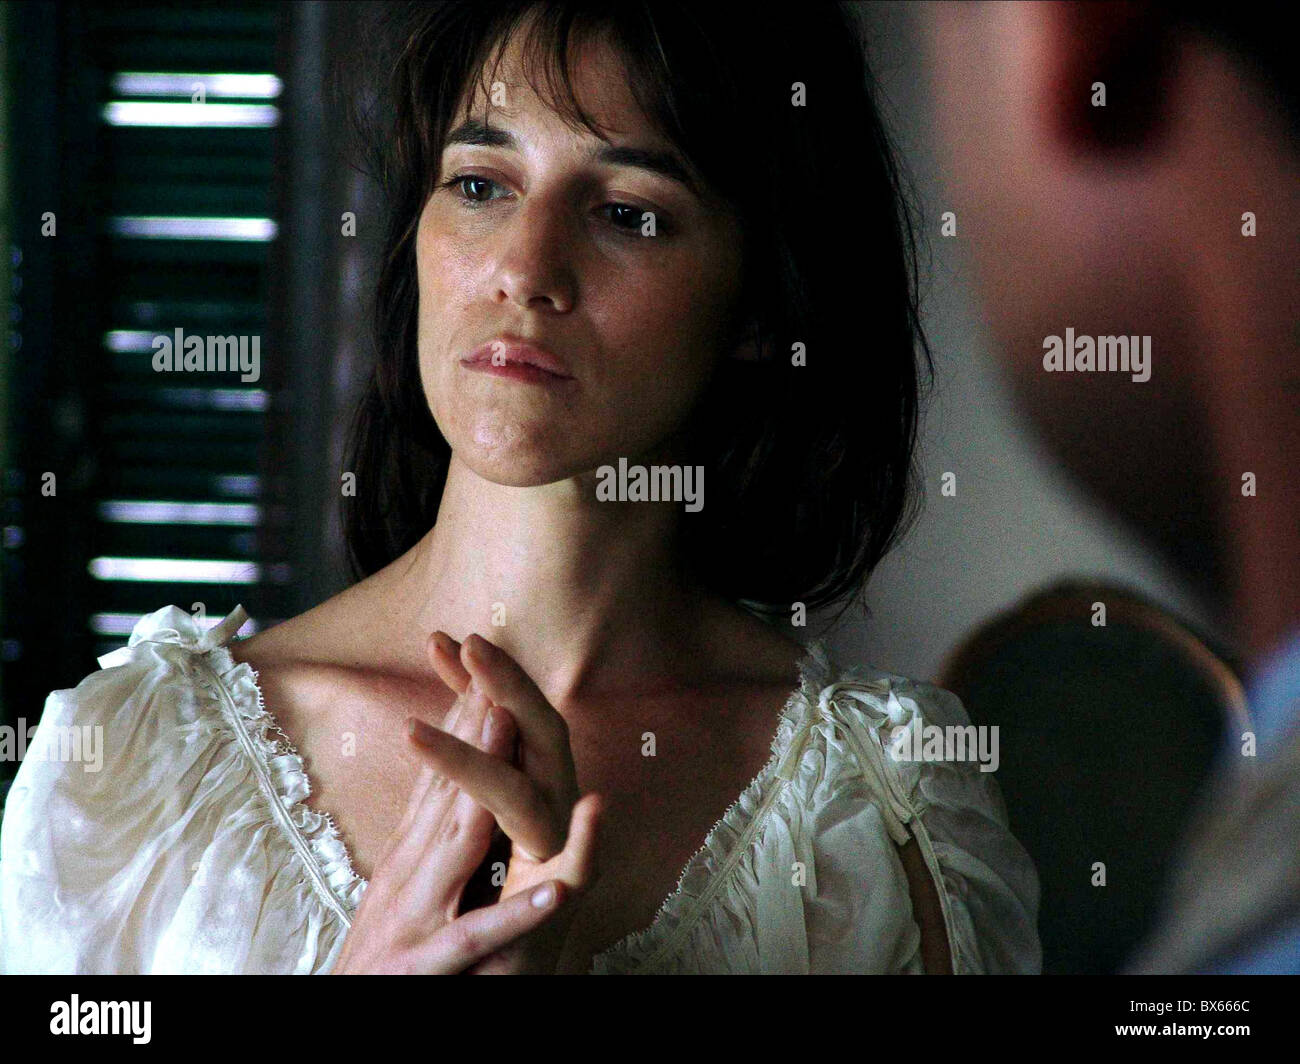 CHARLOTTE GAINSBOURG THE CITY OF YOUR FINAL DESTINATION (2009) - Stock Image